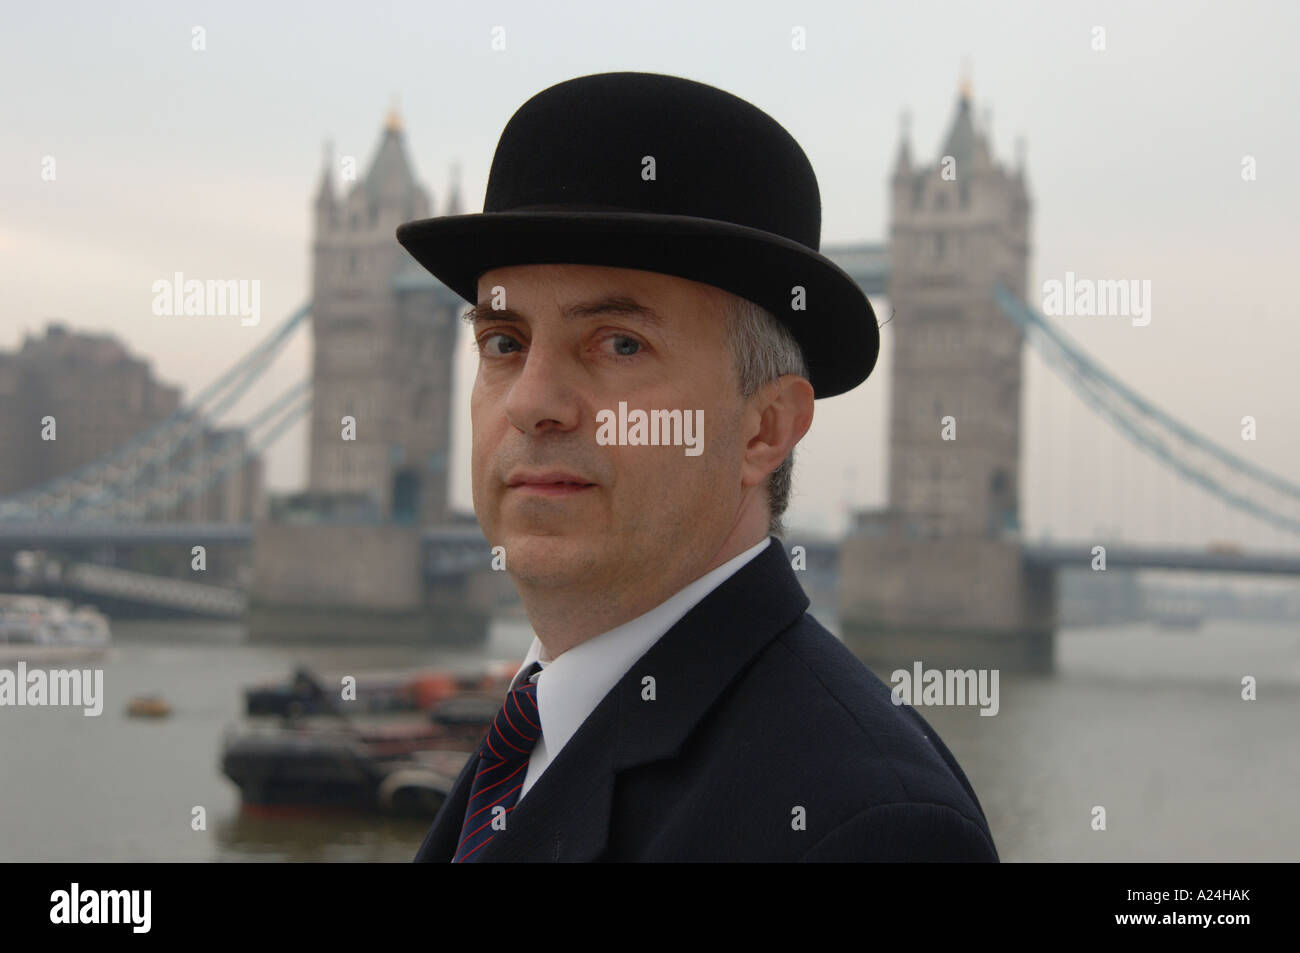 Traditional English city gent in suit and bowler hat by Tower Bridge, City of London, UK. - Stock Image